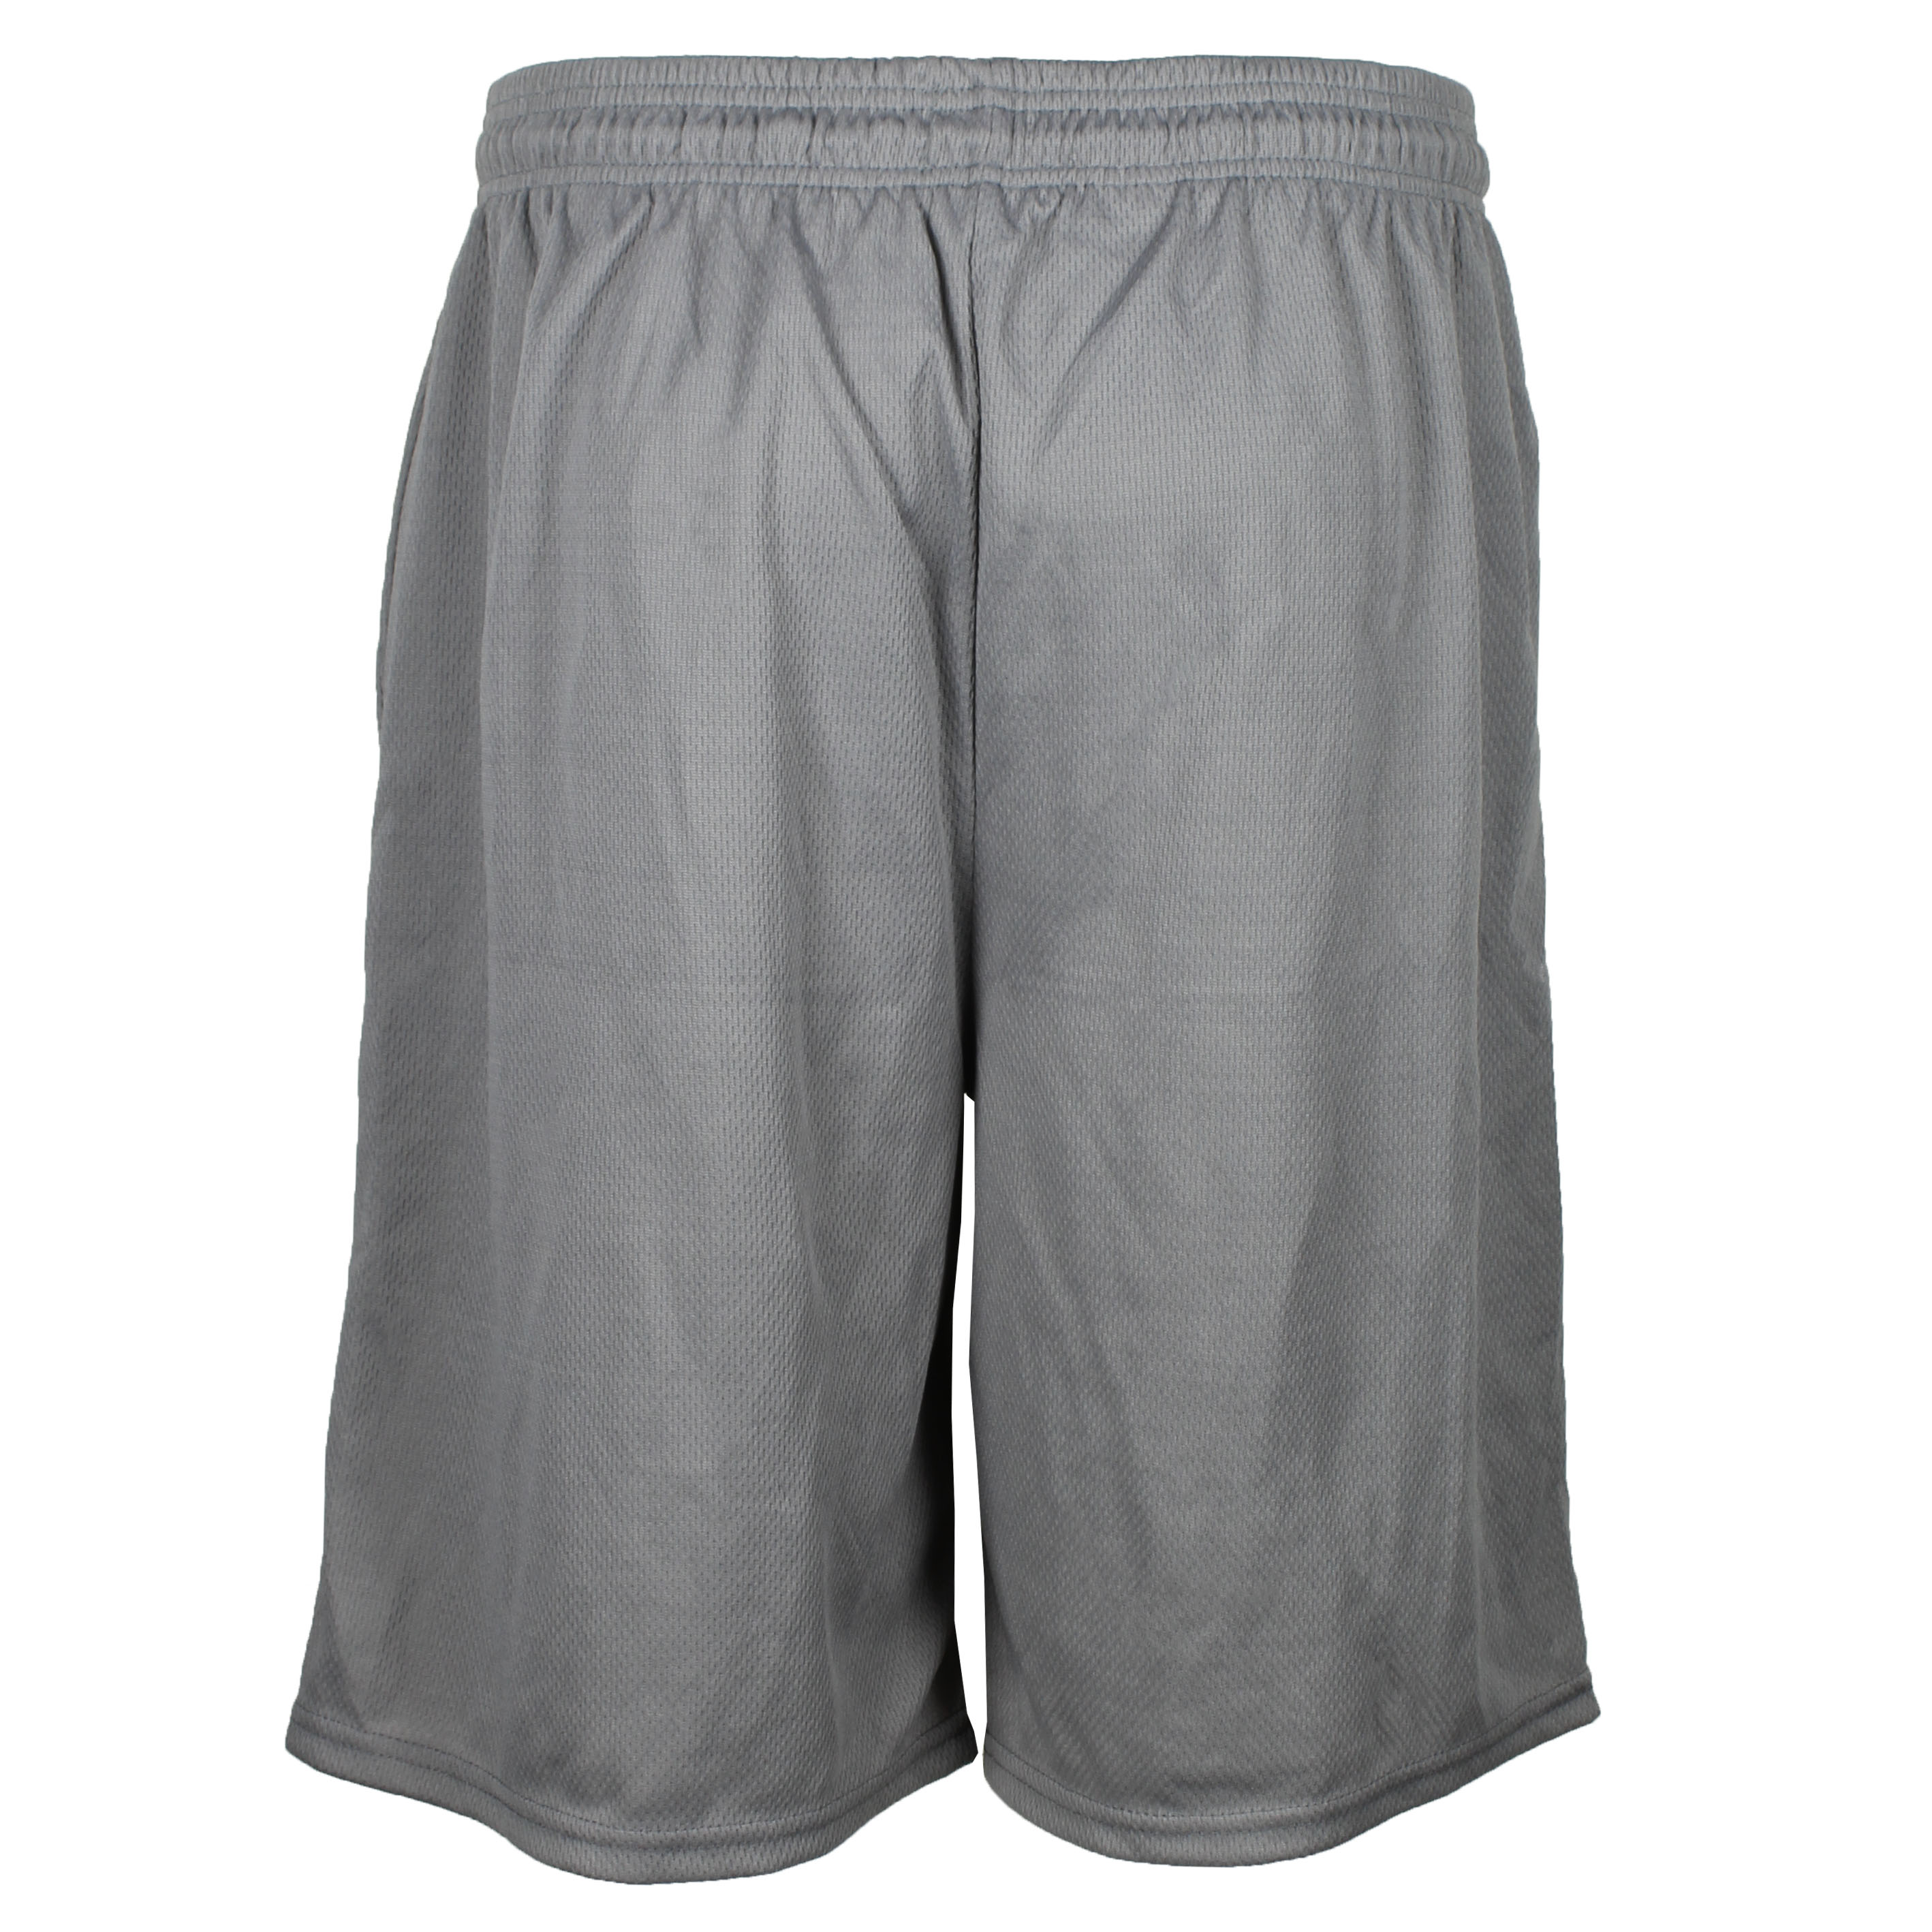 Champion-Men-039-s-Athletic-Mesh-Pocket-Gym-Basketball-9-034-Inseam-Shorts thumbnail 9